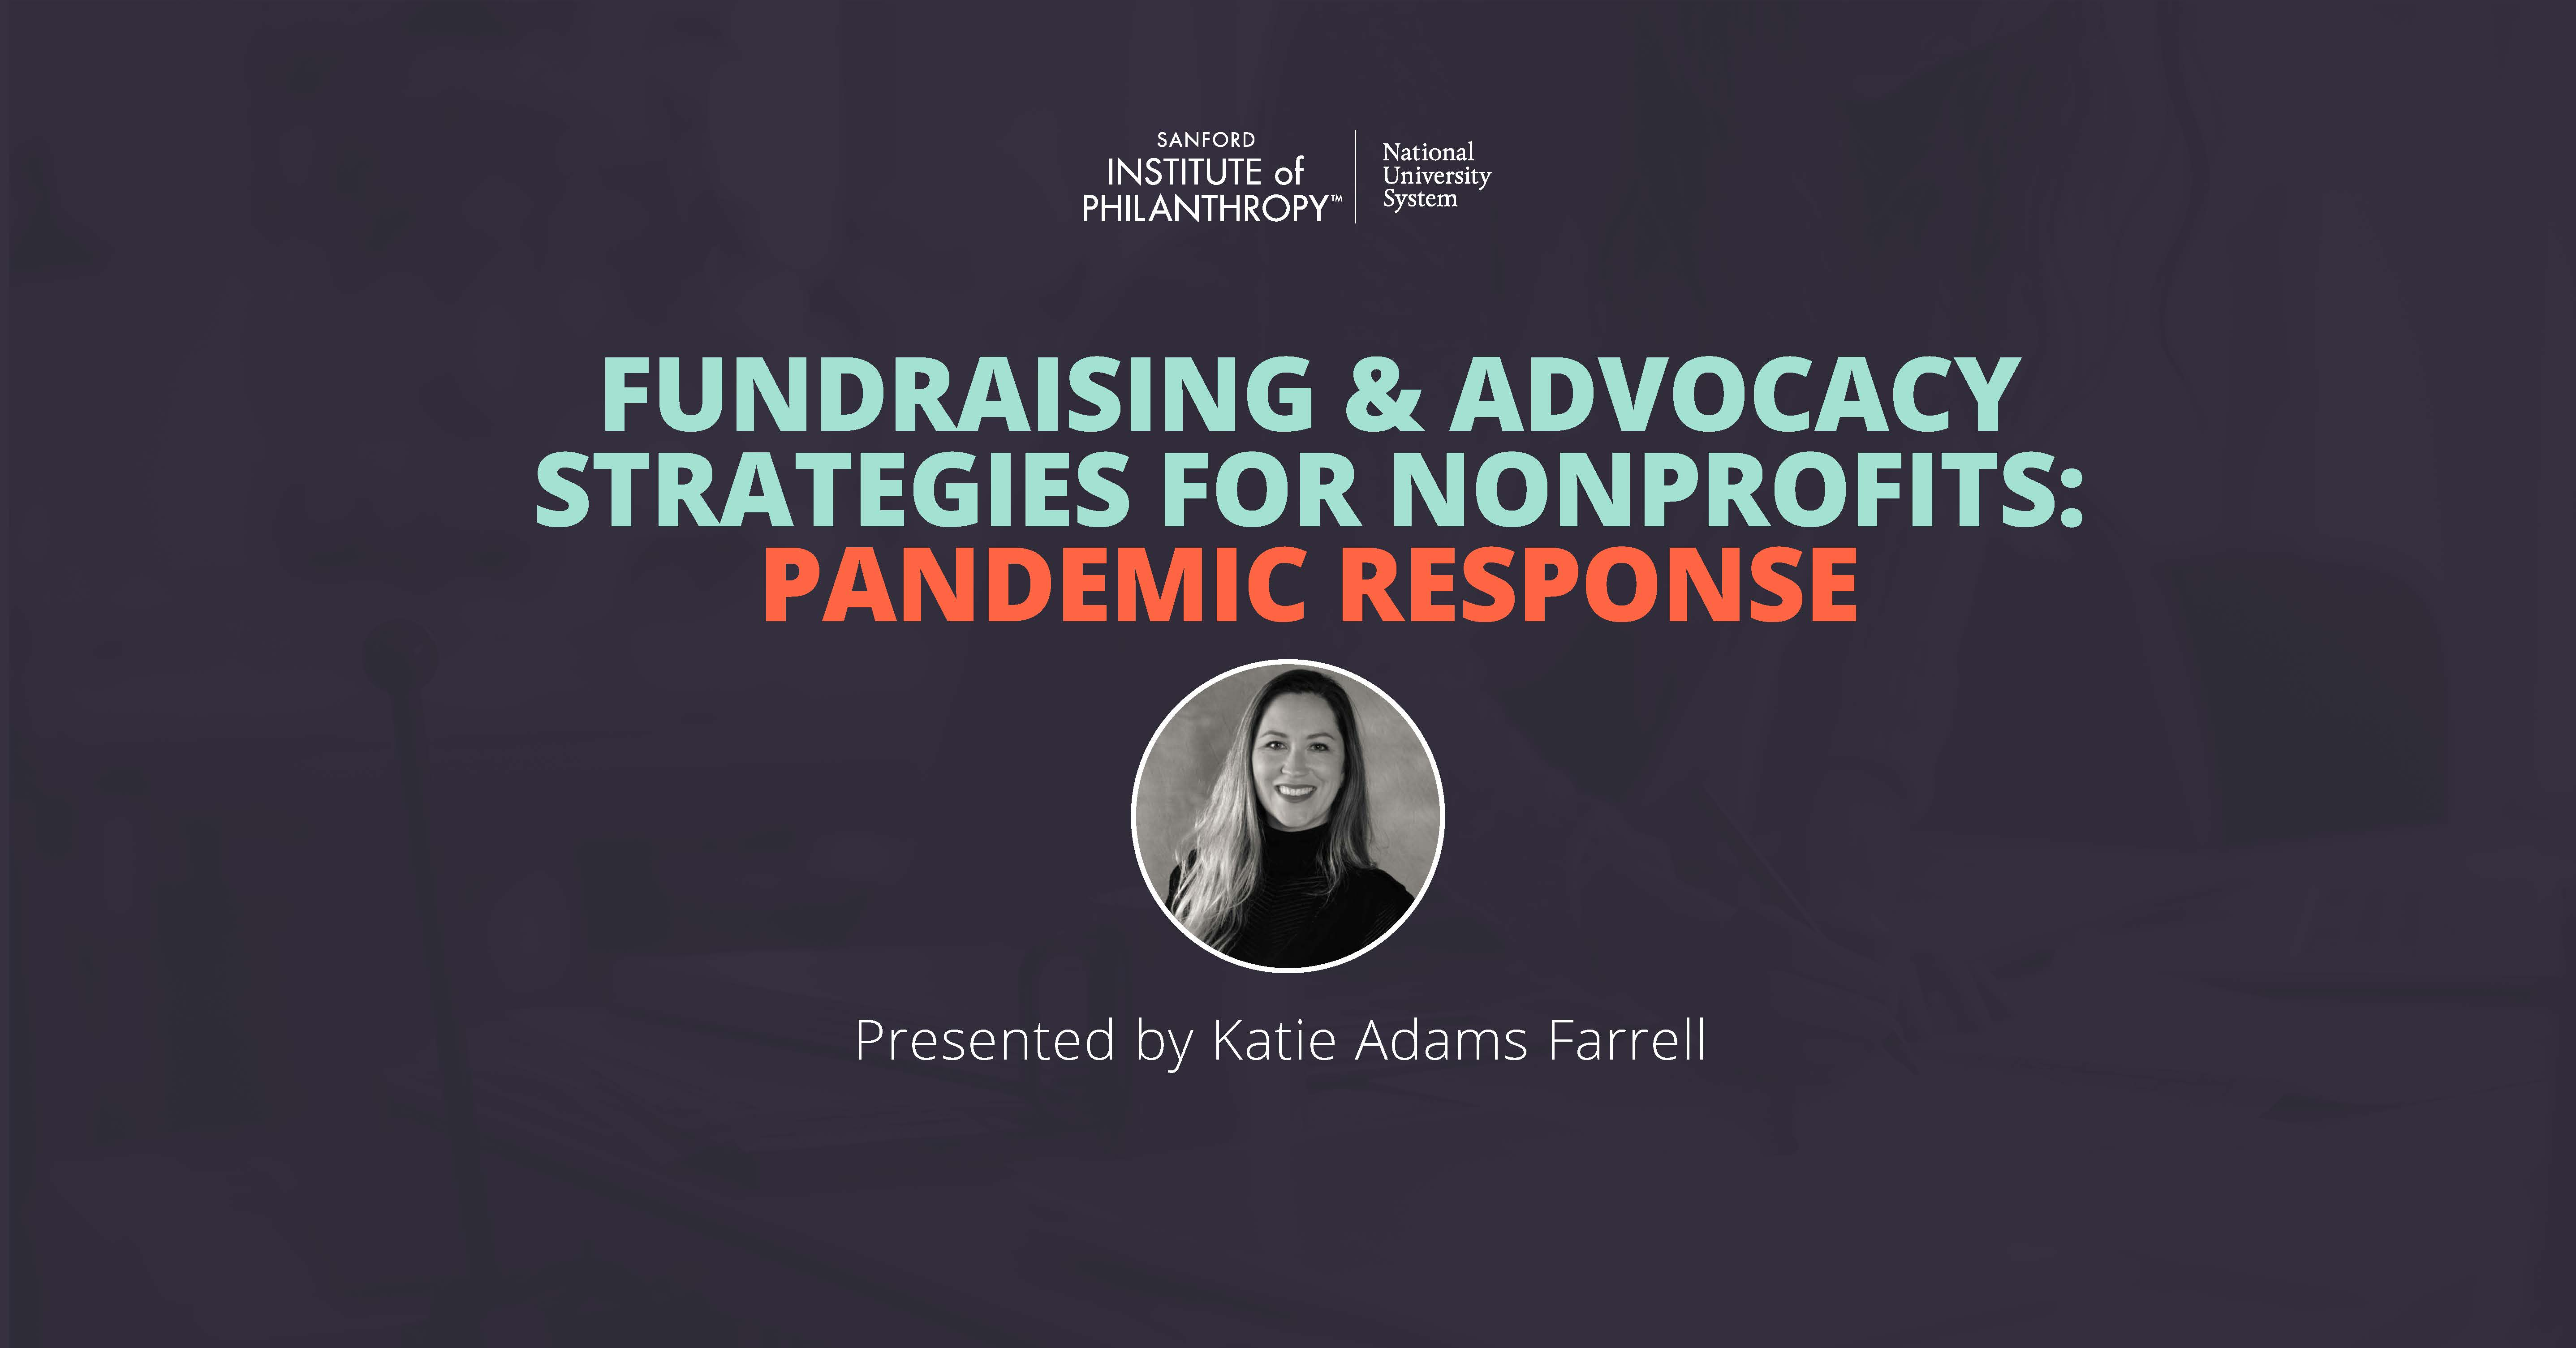 Fundraising & Advocacy Strategies for Nonprofits: Pandemic Response